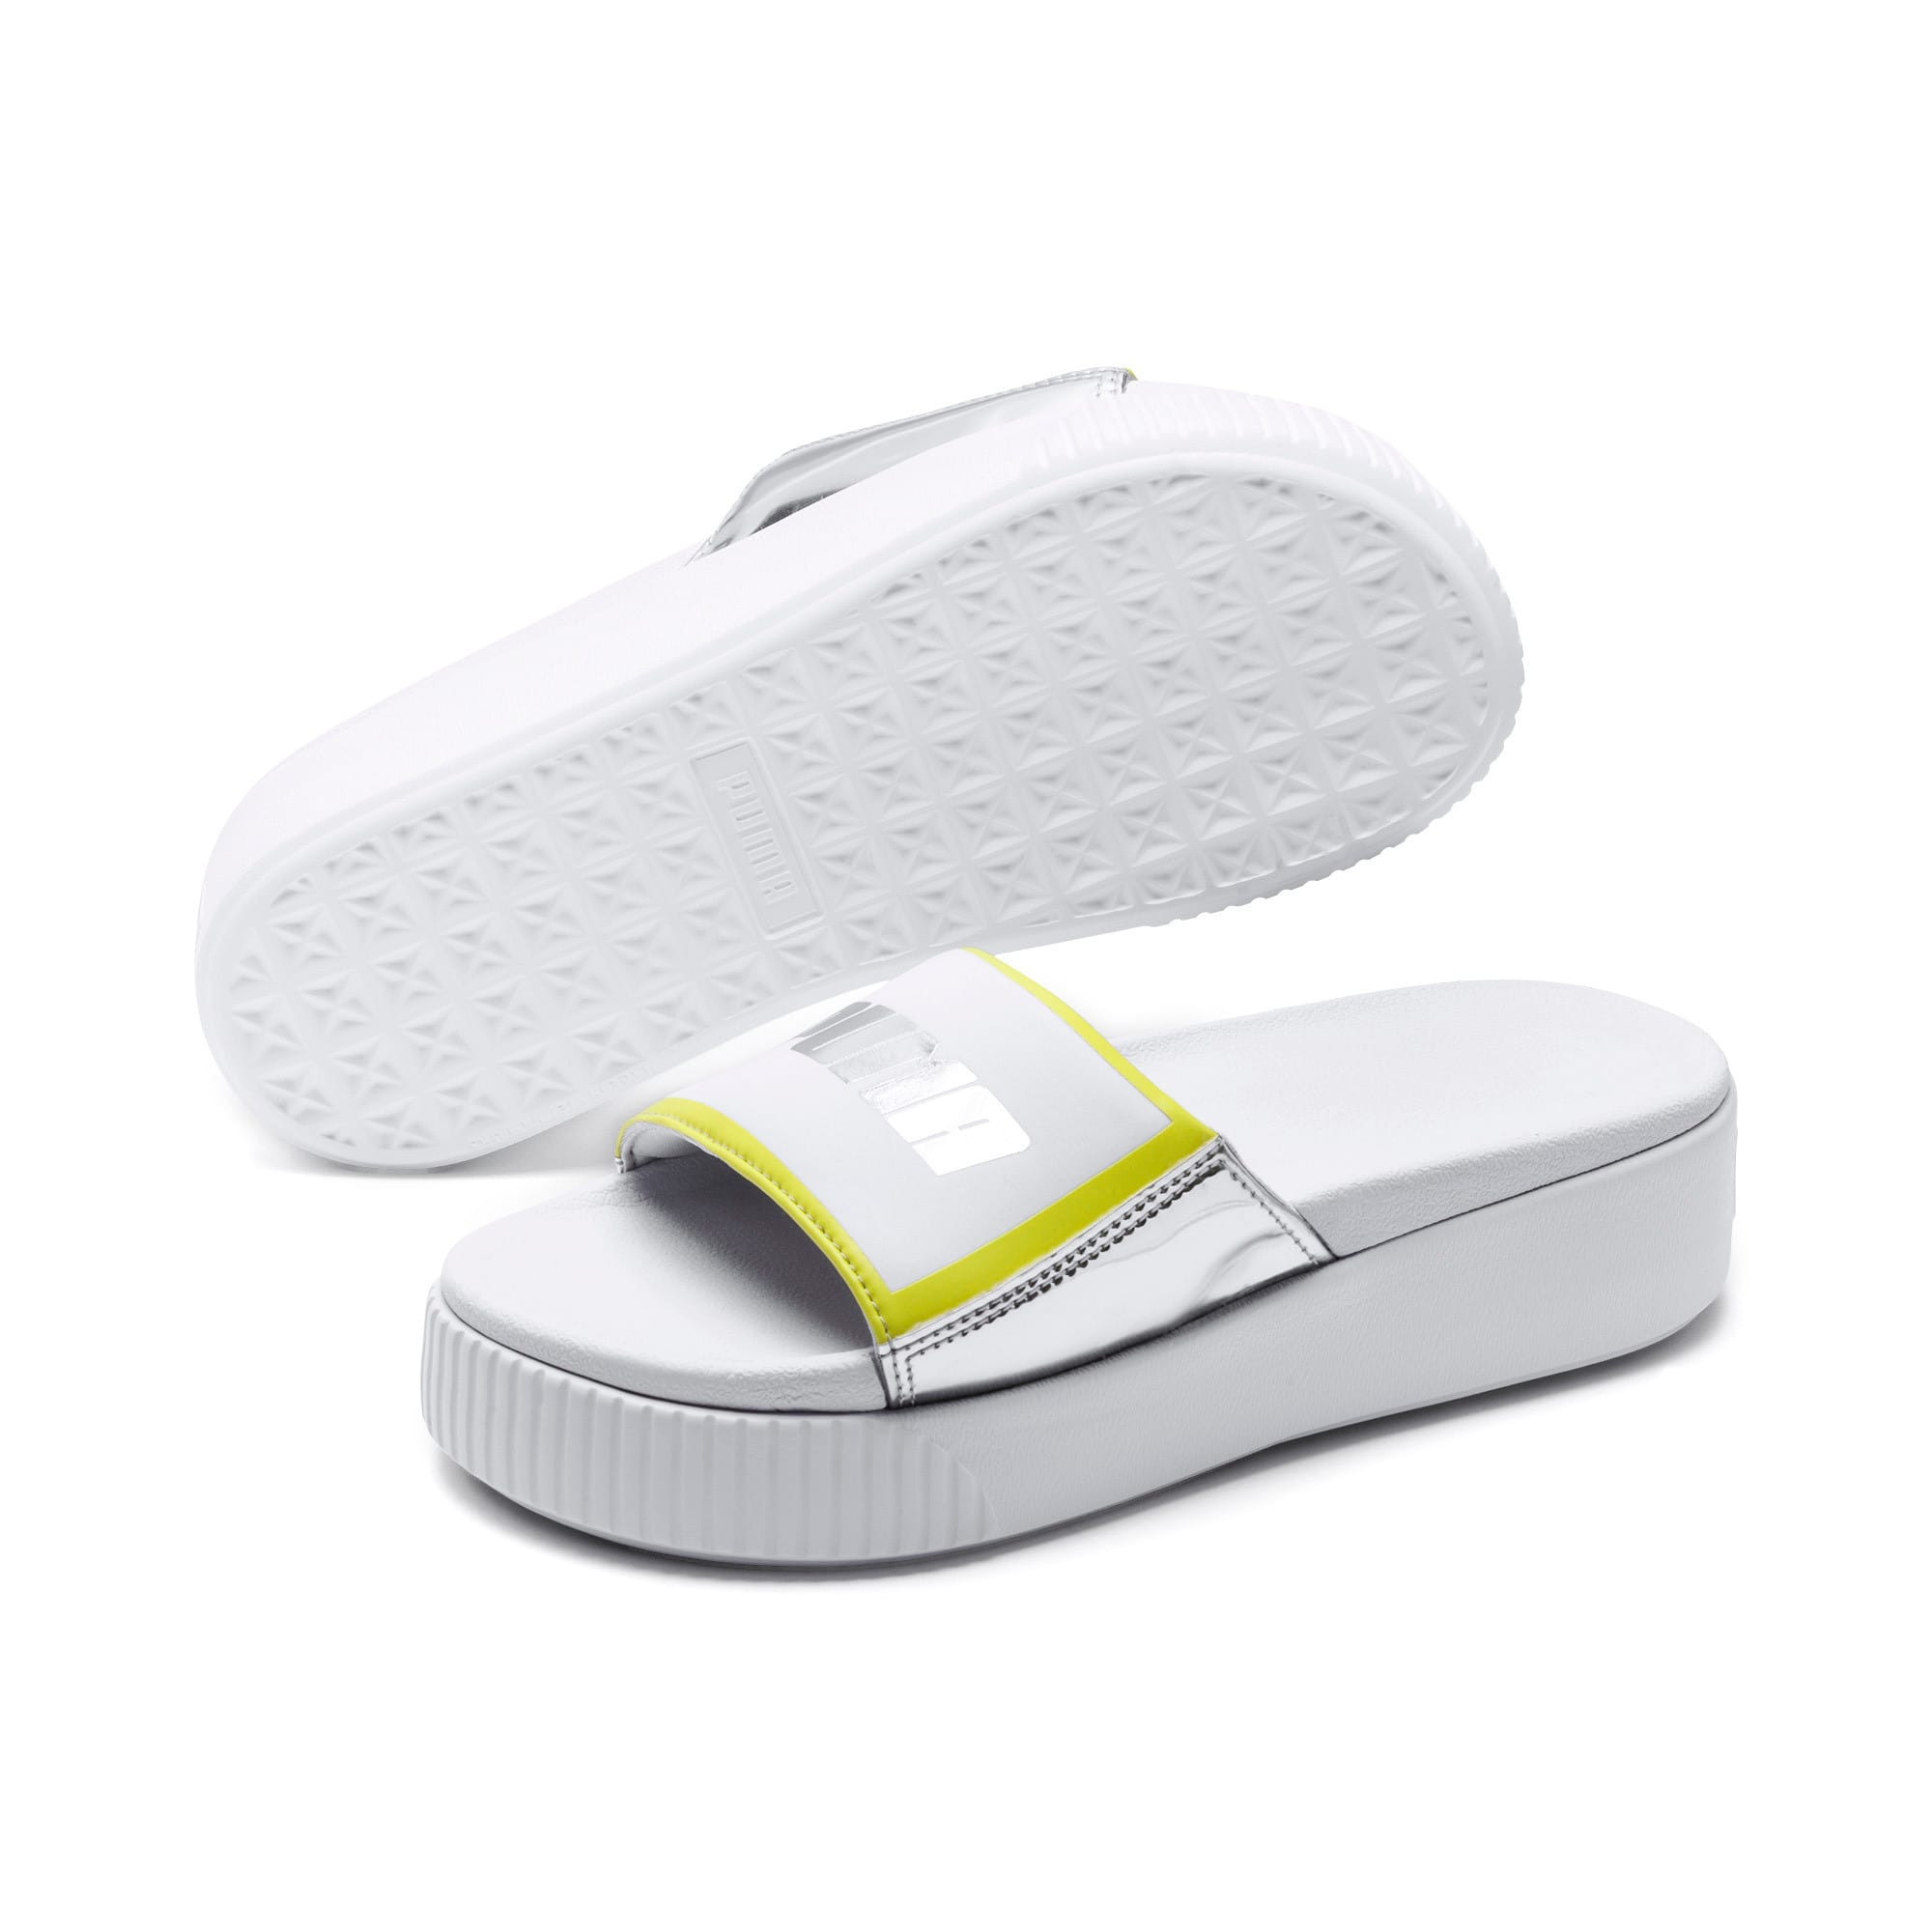 Thumbnail 2 of Platform Slide Trailblazer Metallic Women's Sandals, Puma White-Puma Silver, medium